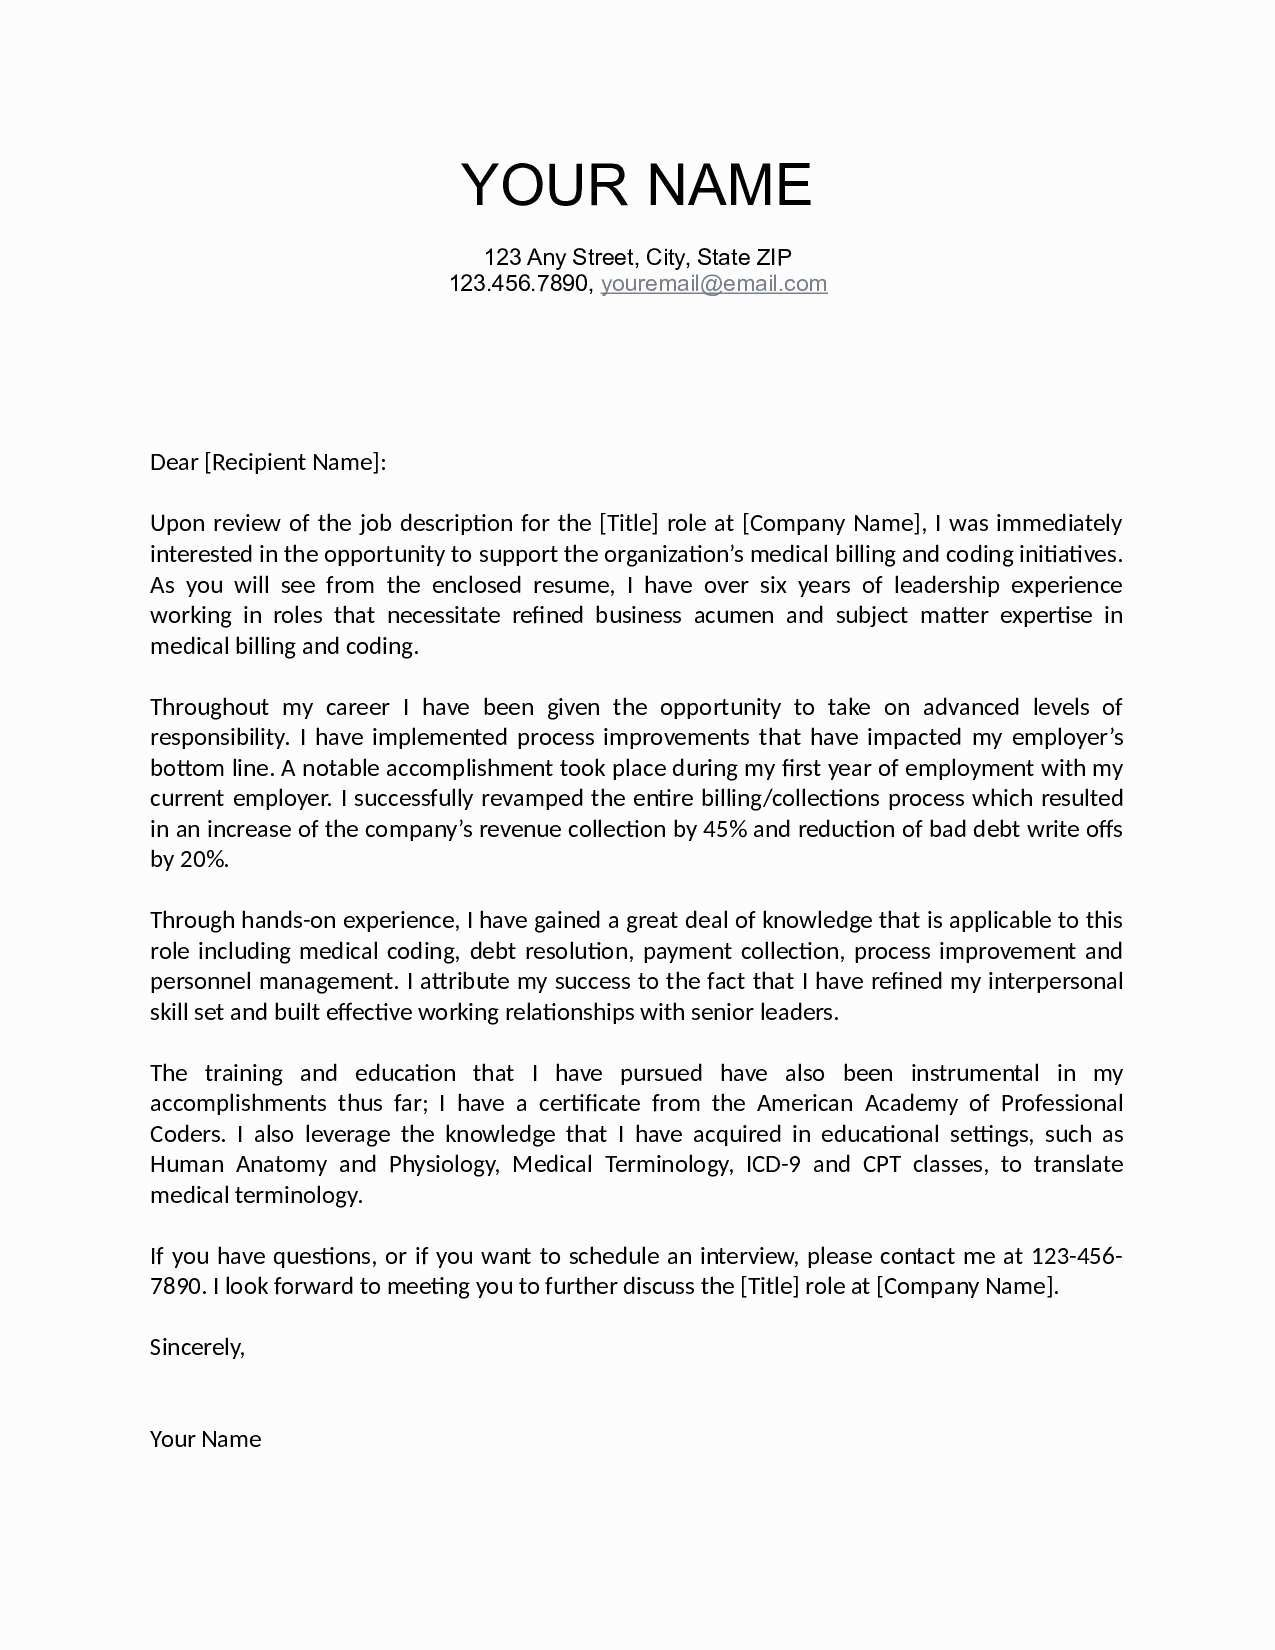 Confirmation Letter Template - Sample Confirmation Letter for Job Refrence Best Job Fer Letter